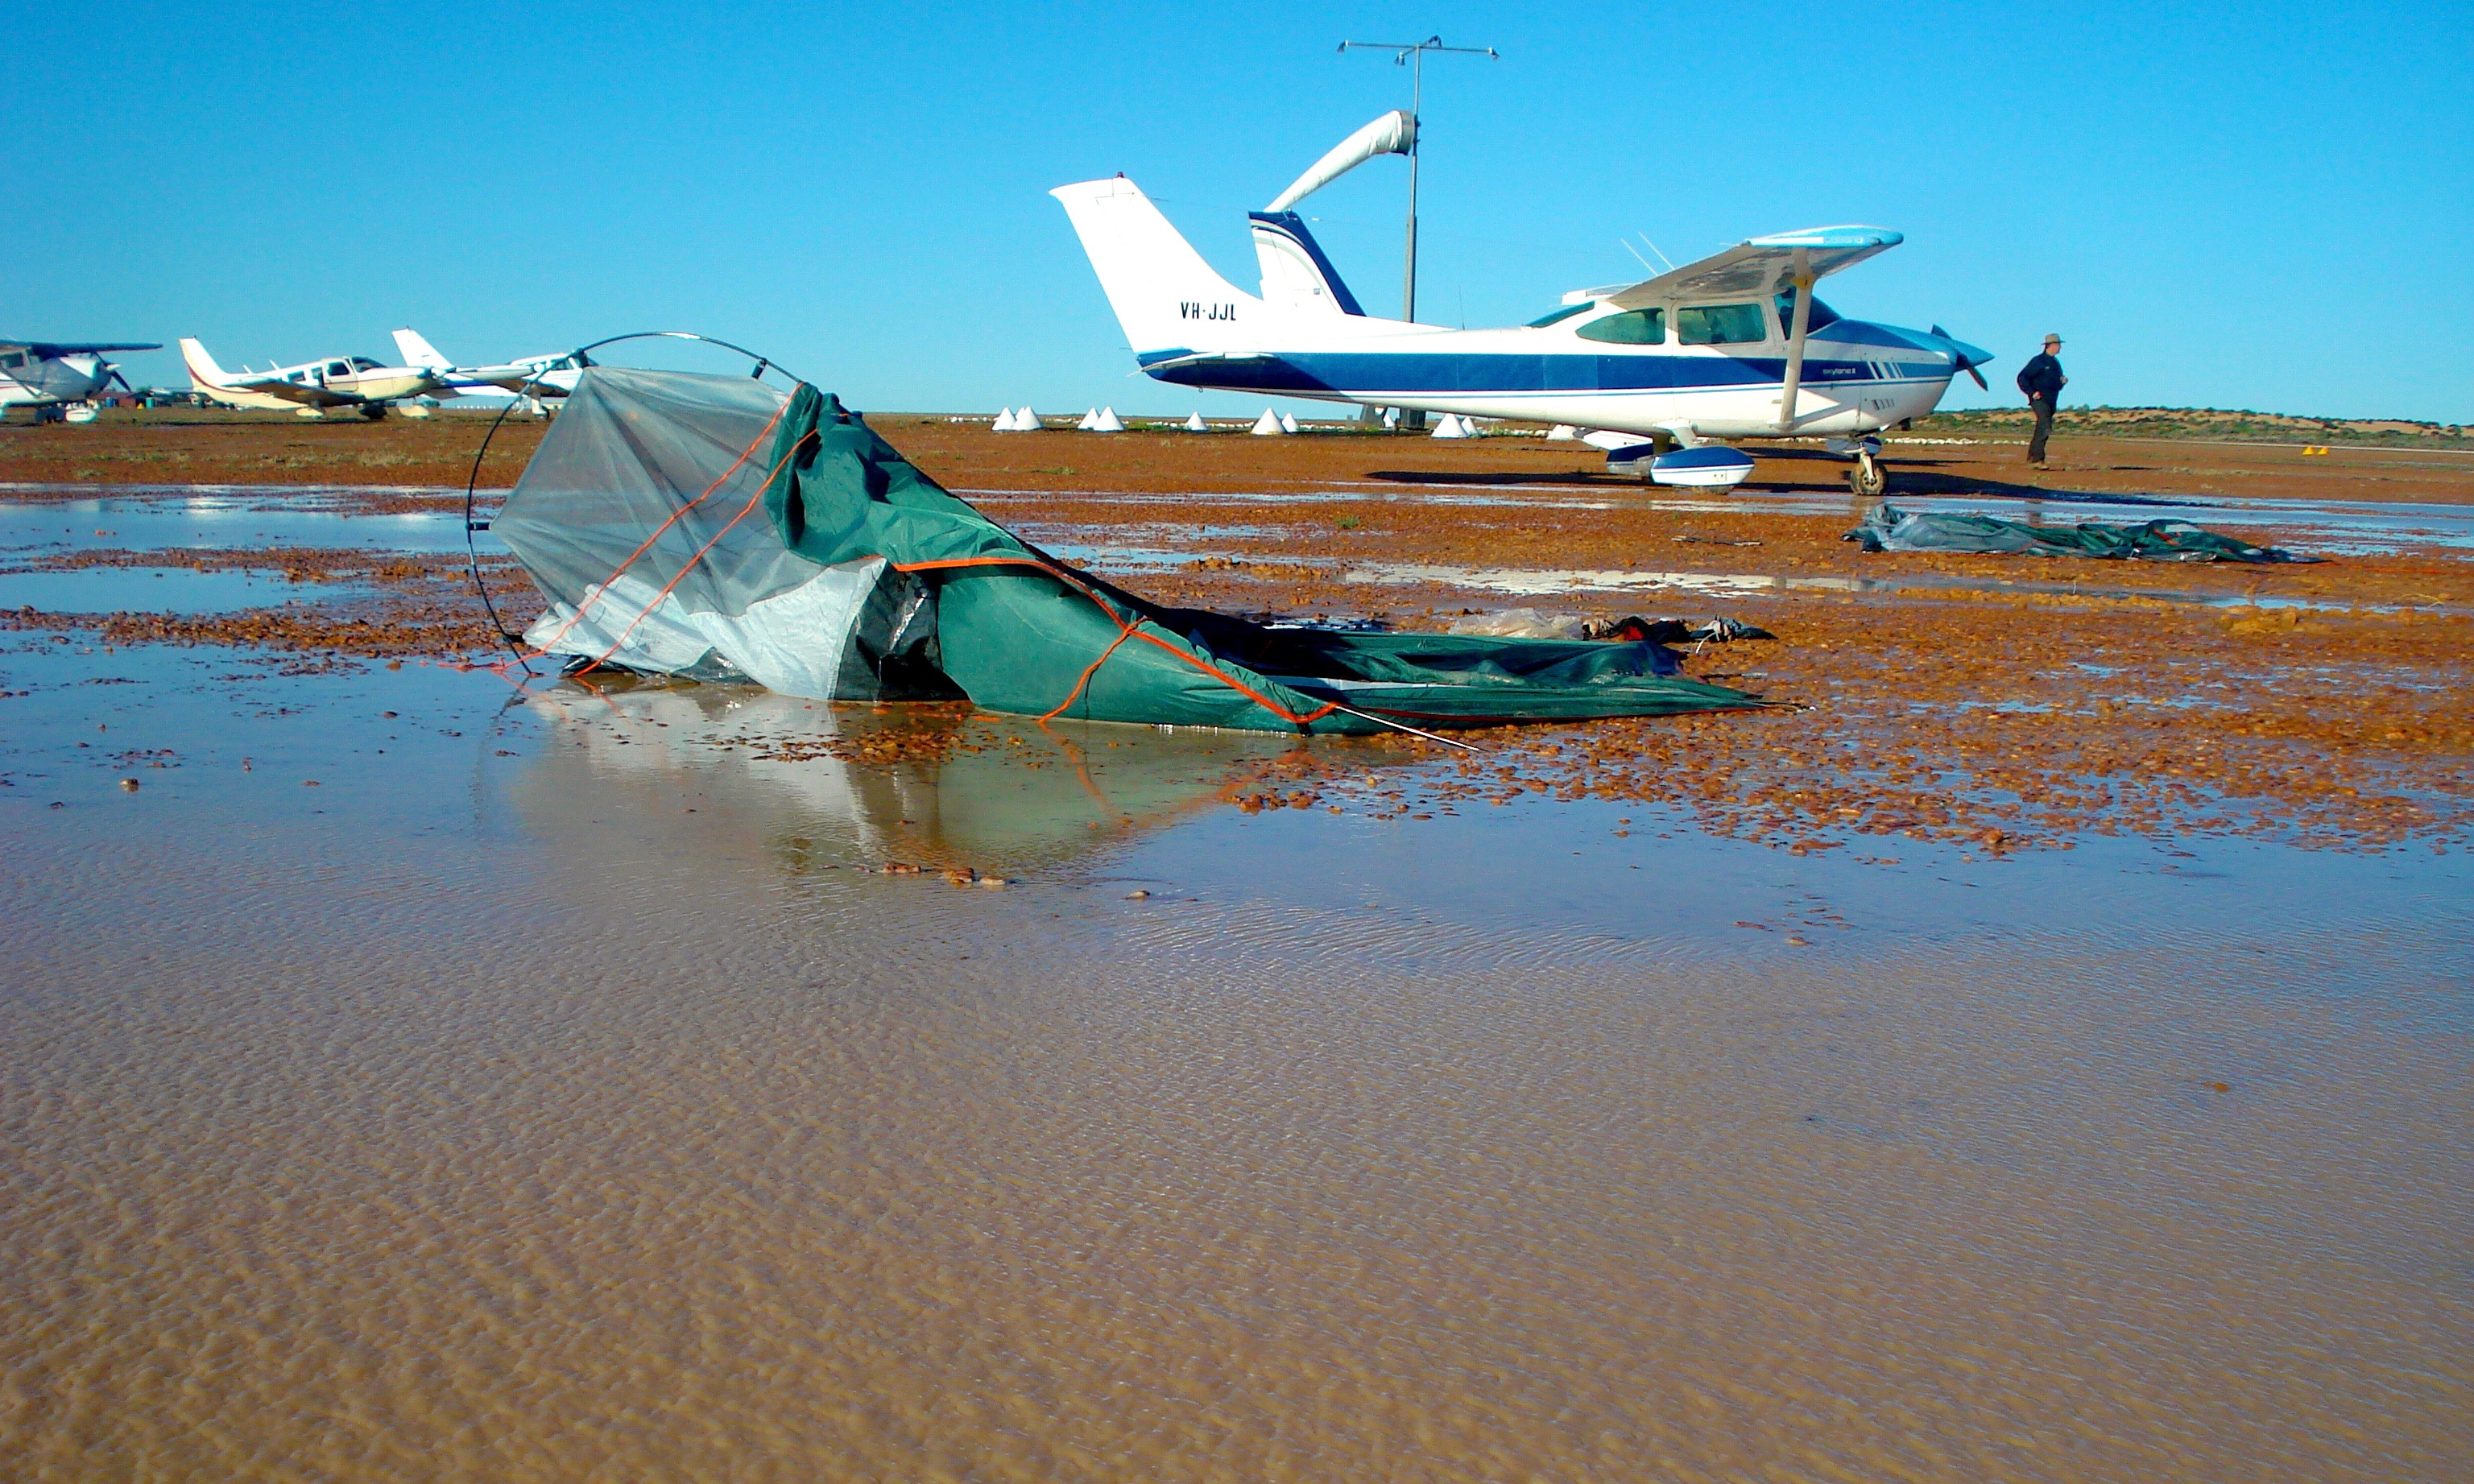 birdsville wash out 2010